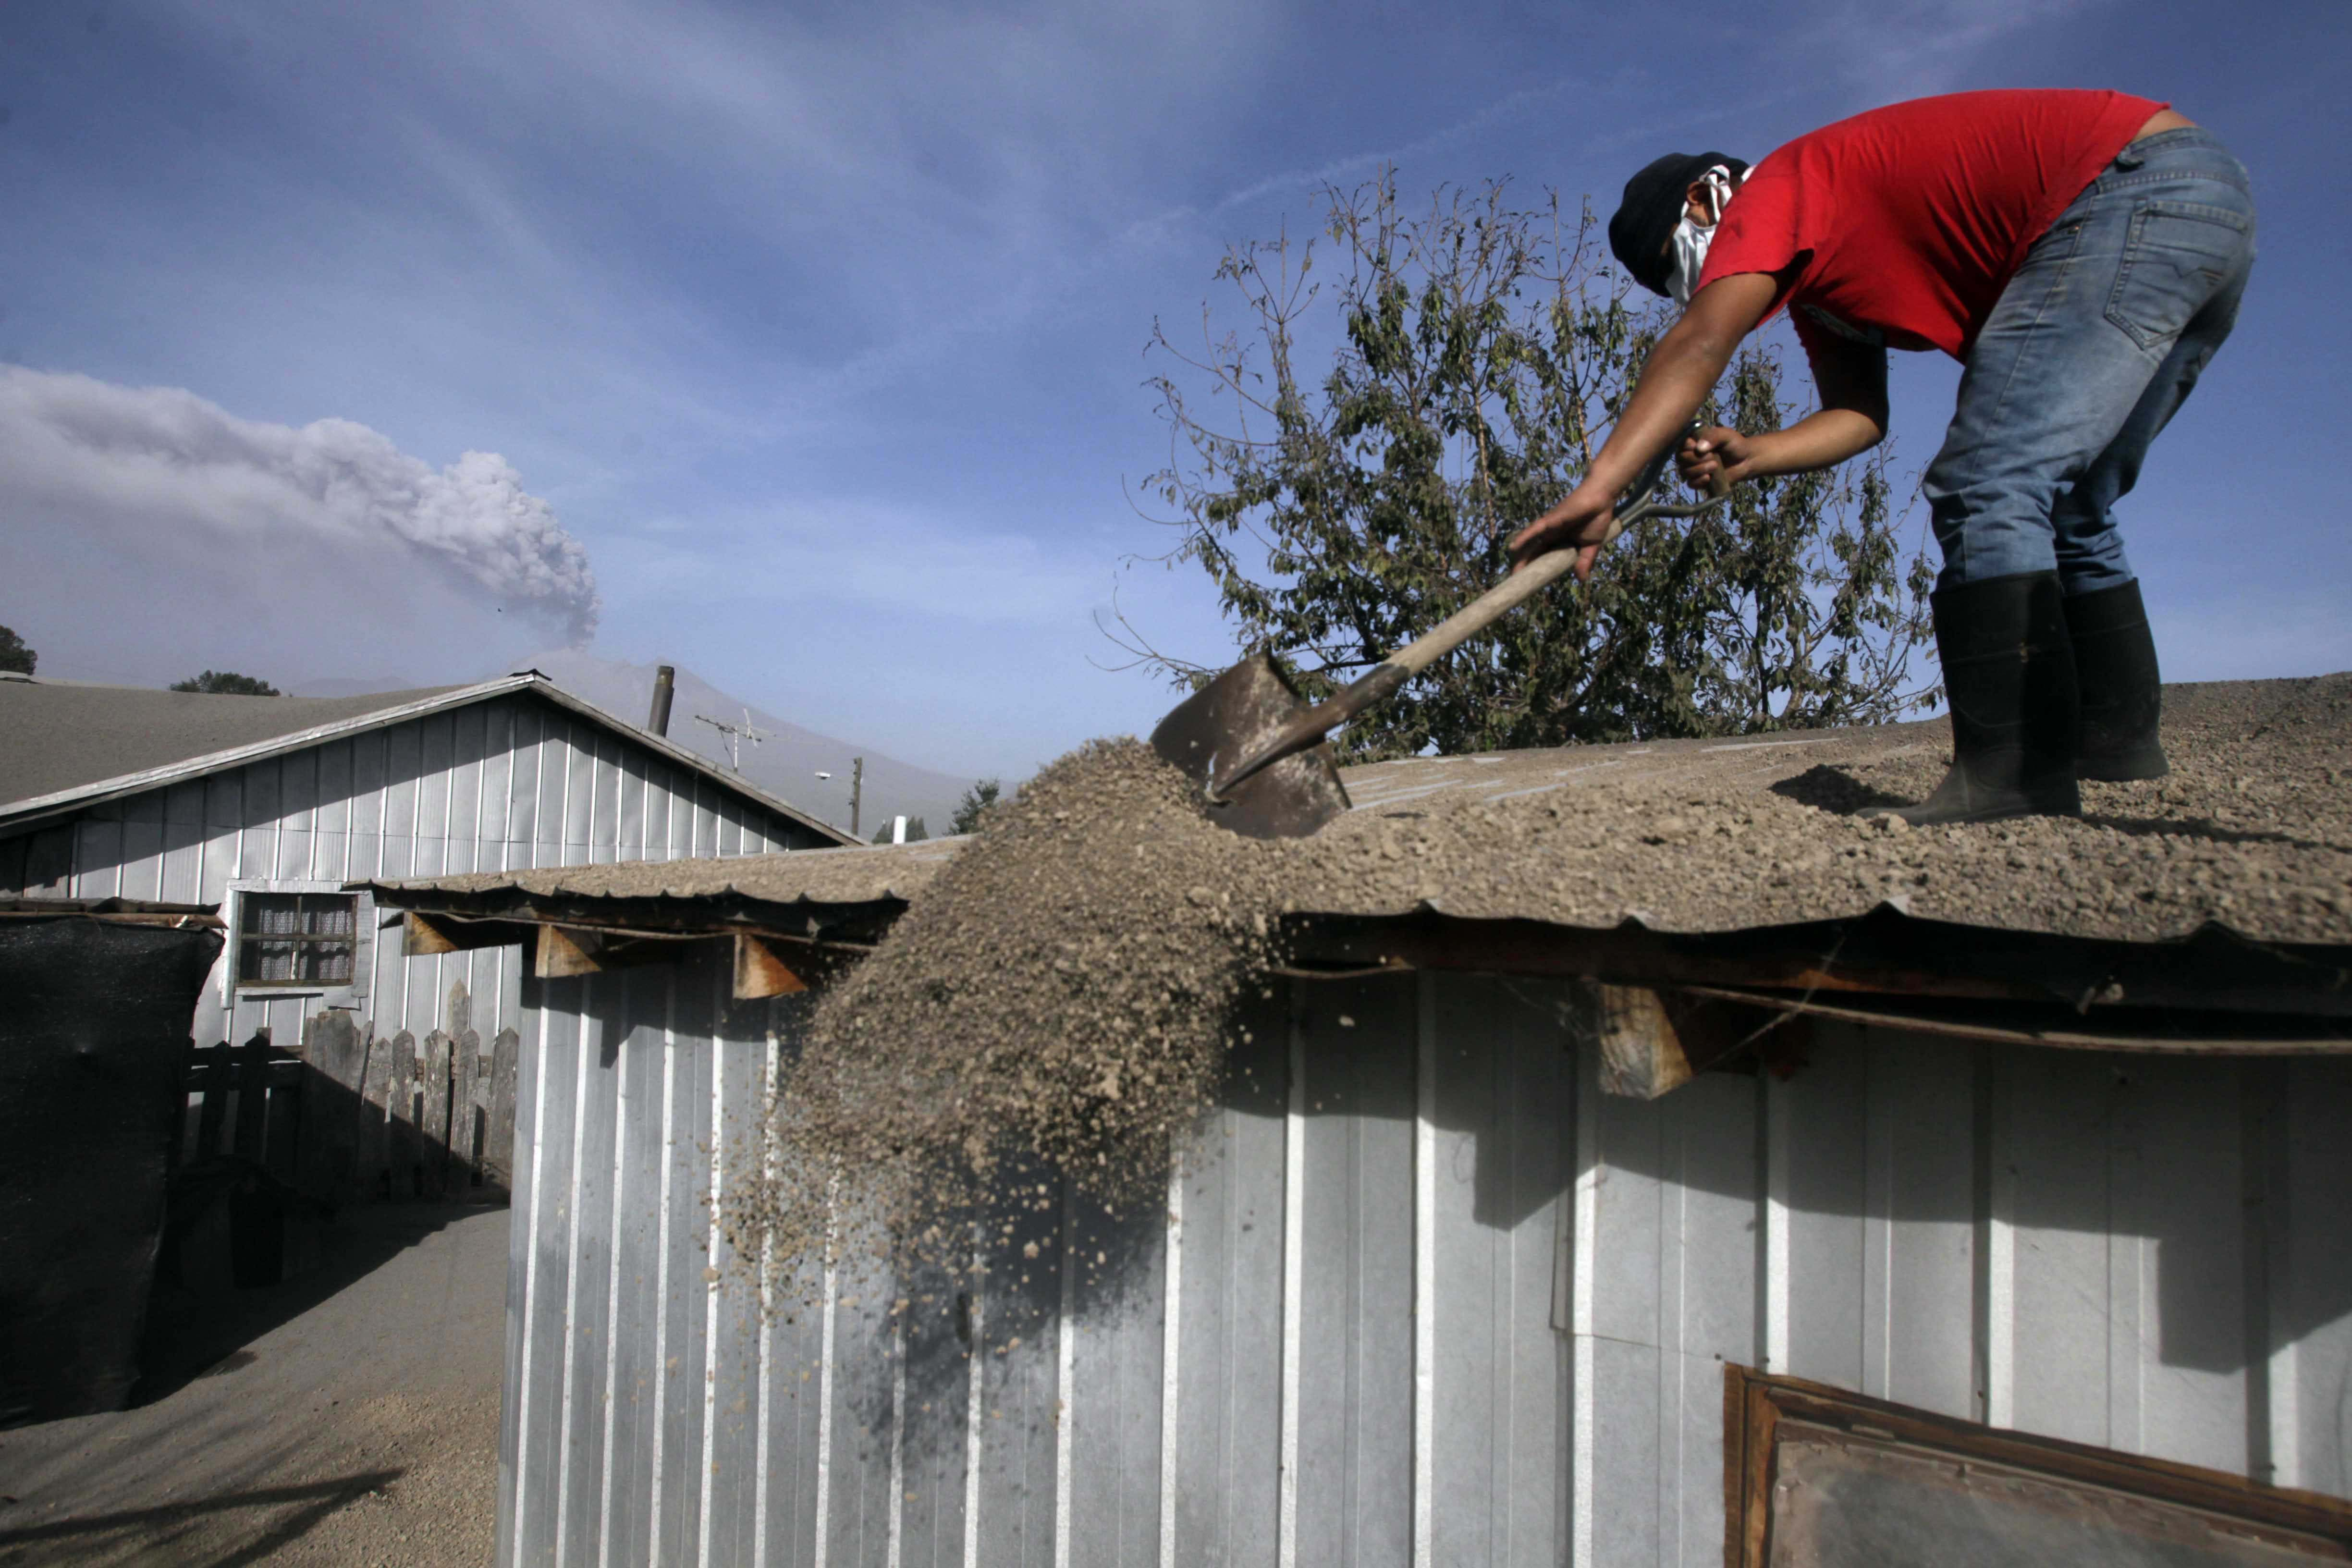 A man sweeps volcanic ash from the rooftop of his home in Puerto Varas, Chile, April 24, 2015.